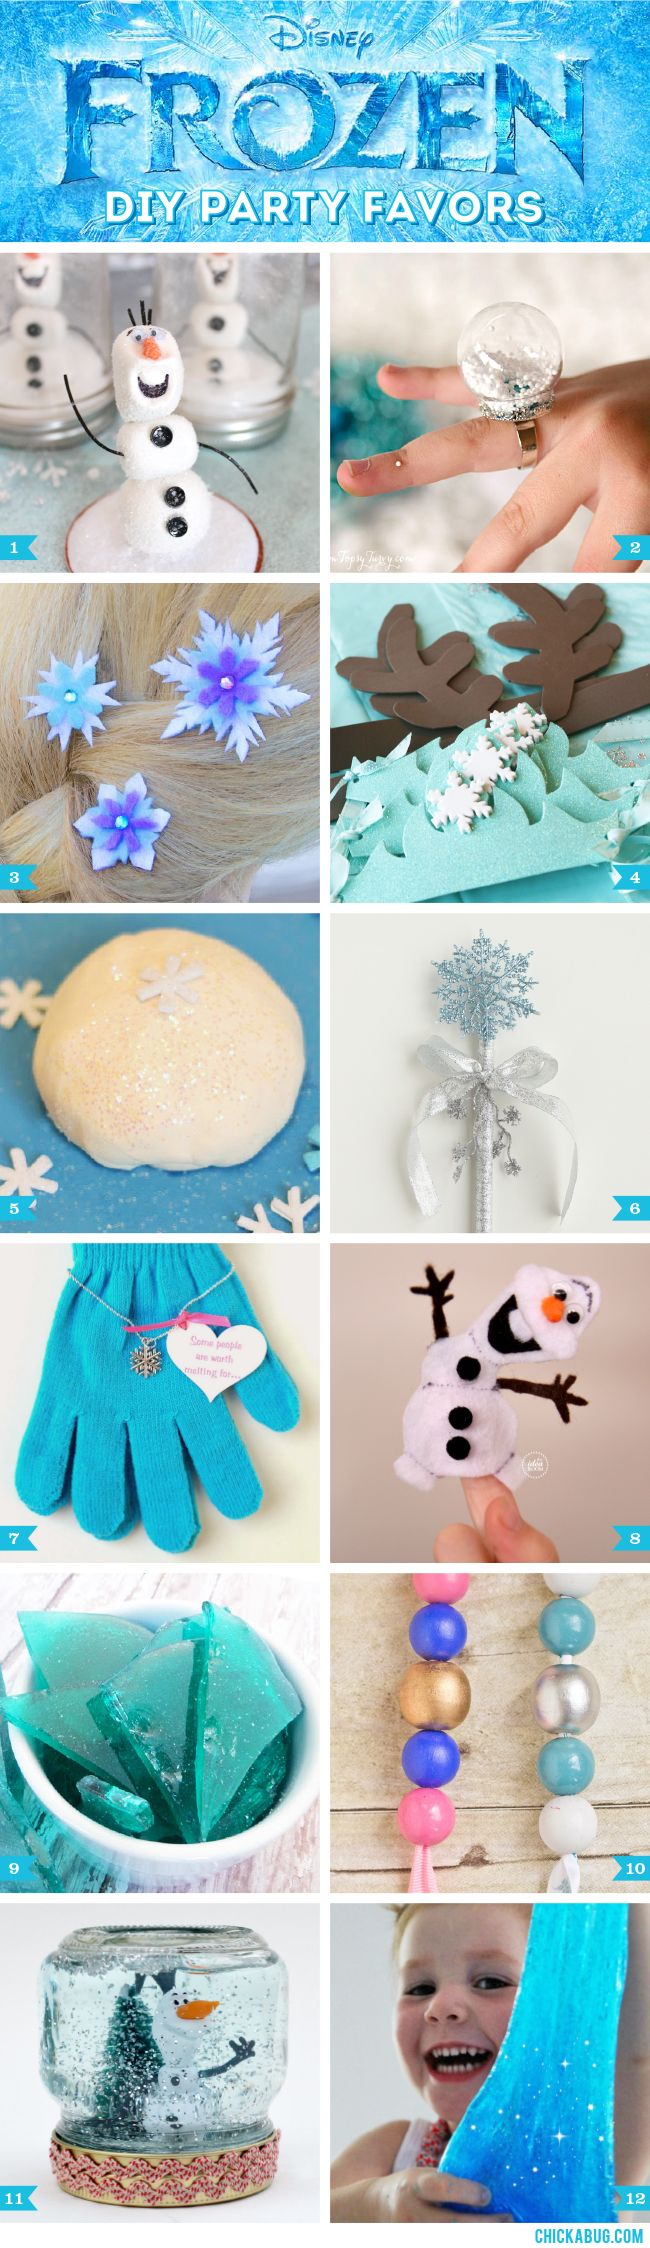 If you're throwing a Frozen party, there's certainly no shortage of official Disney merchandise out there to fill your favor bags! But DIY gifts are super thoughtful, often less expensive, and let's face it… some of us love an excuse to get craftin'. ; ) Here are 12 fun Frozen party favor ideas, with gifts for both girls and boys! 1. Olaf mason jar (water-free) snow globes by My Sister's Suitcase 2. Frozen snow globe rings …